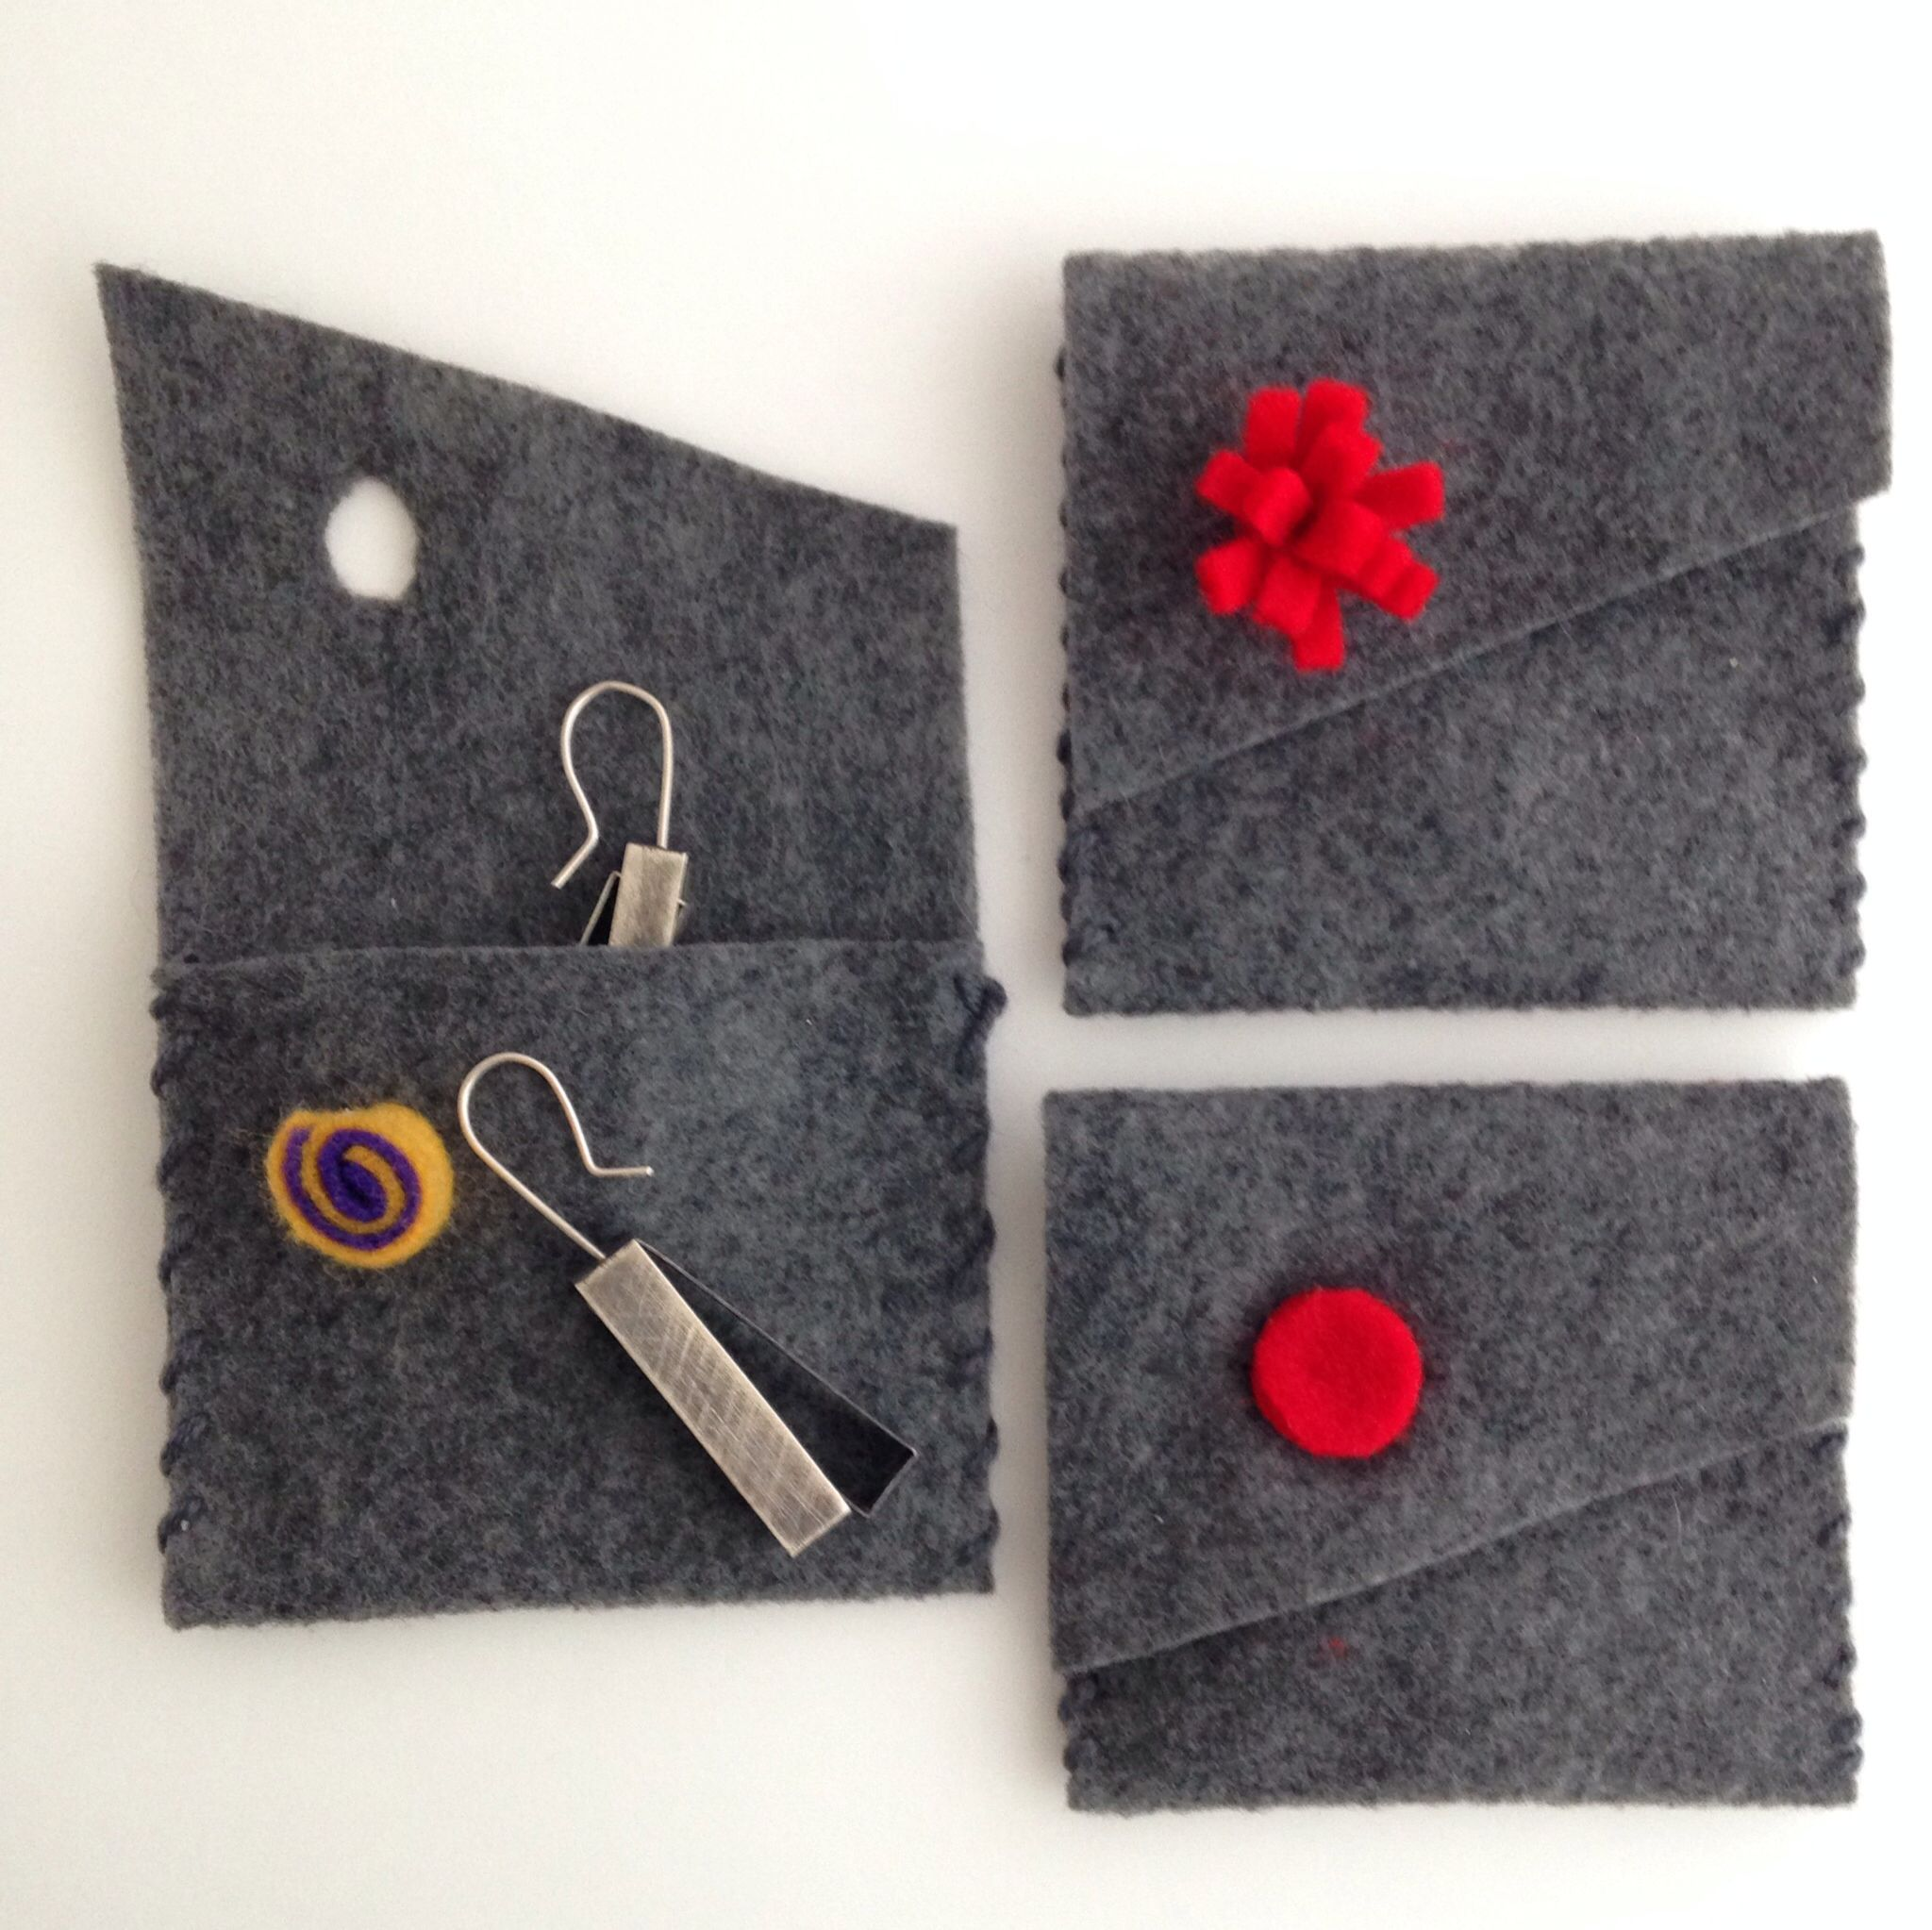 Simple felt envelopes with interesting button will likely be retained by the buyer to keep their jewellery in. | Brand: Donald & Jane